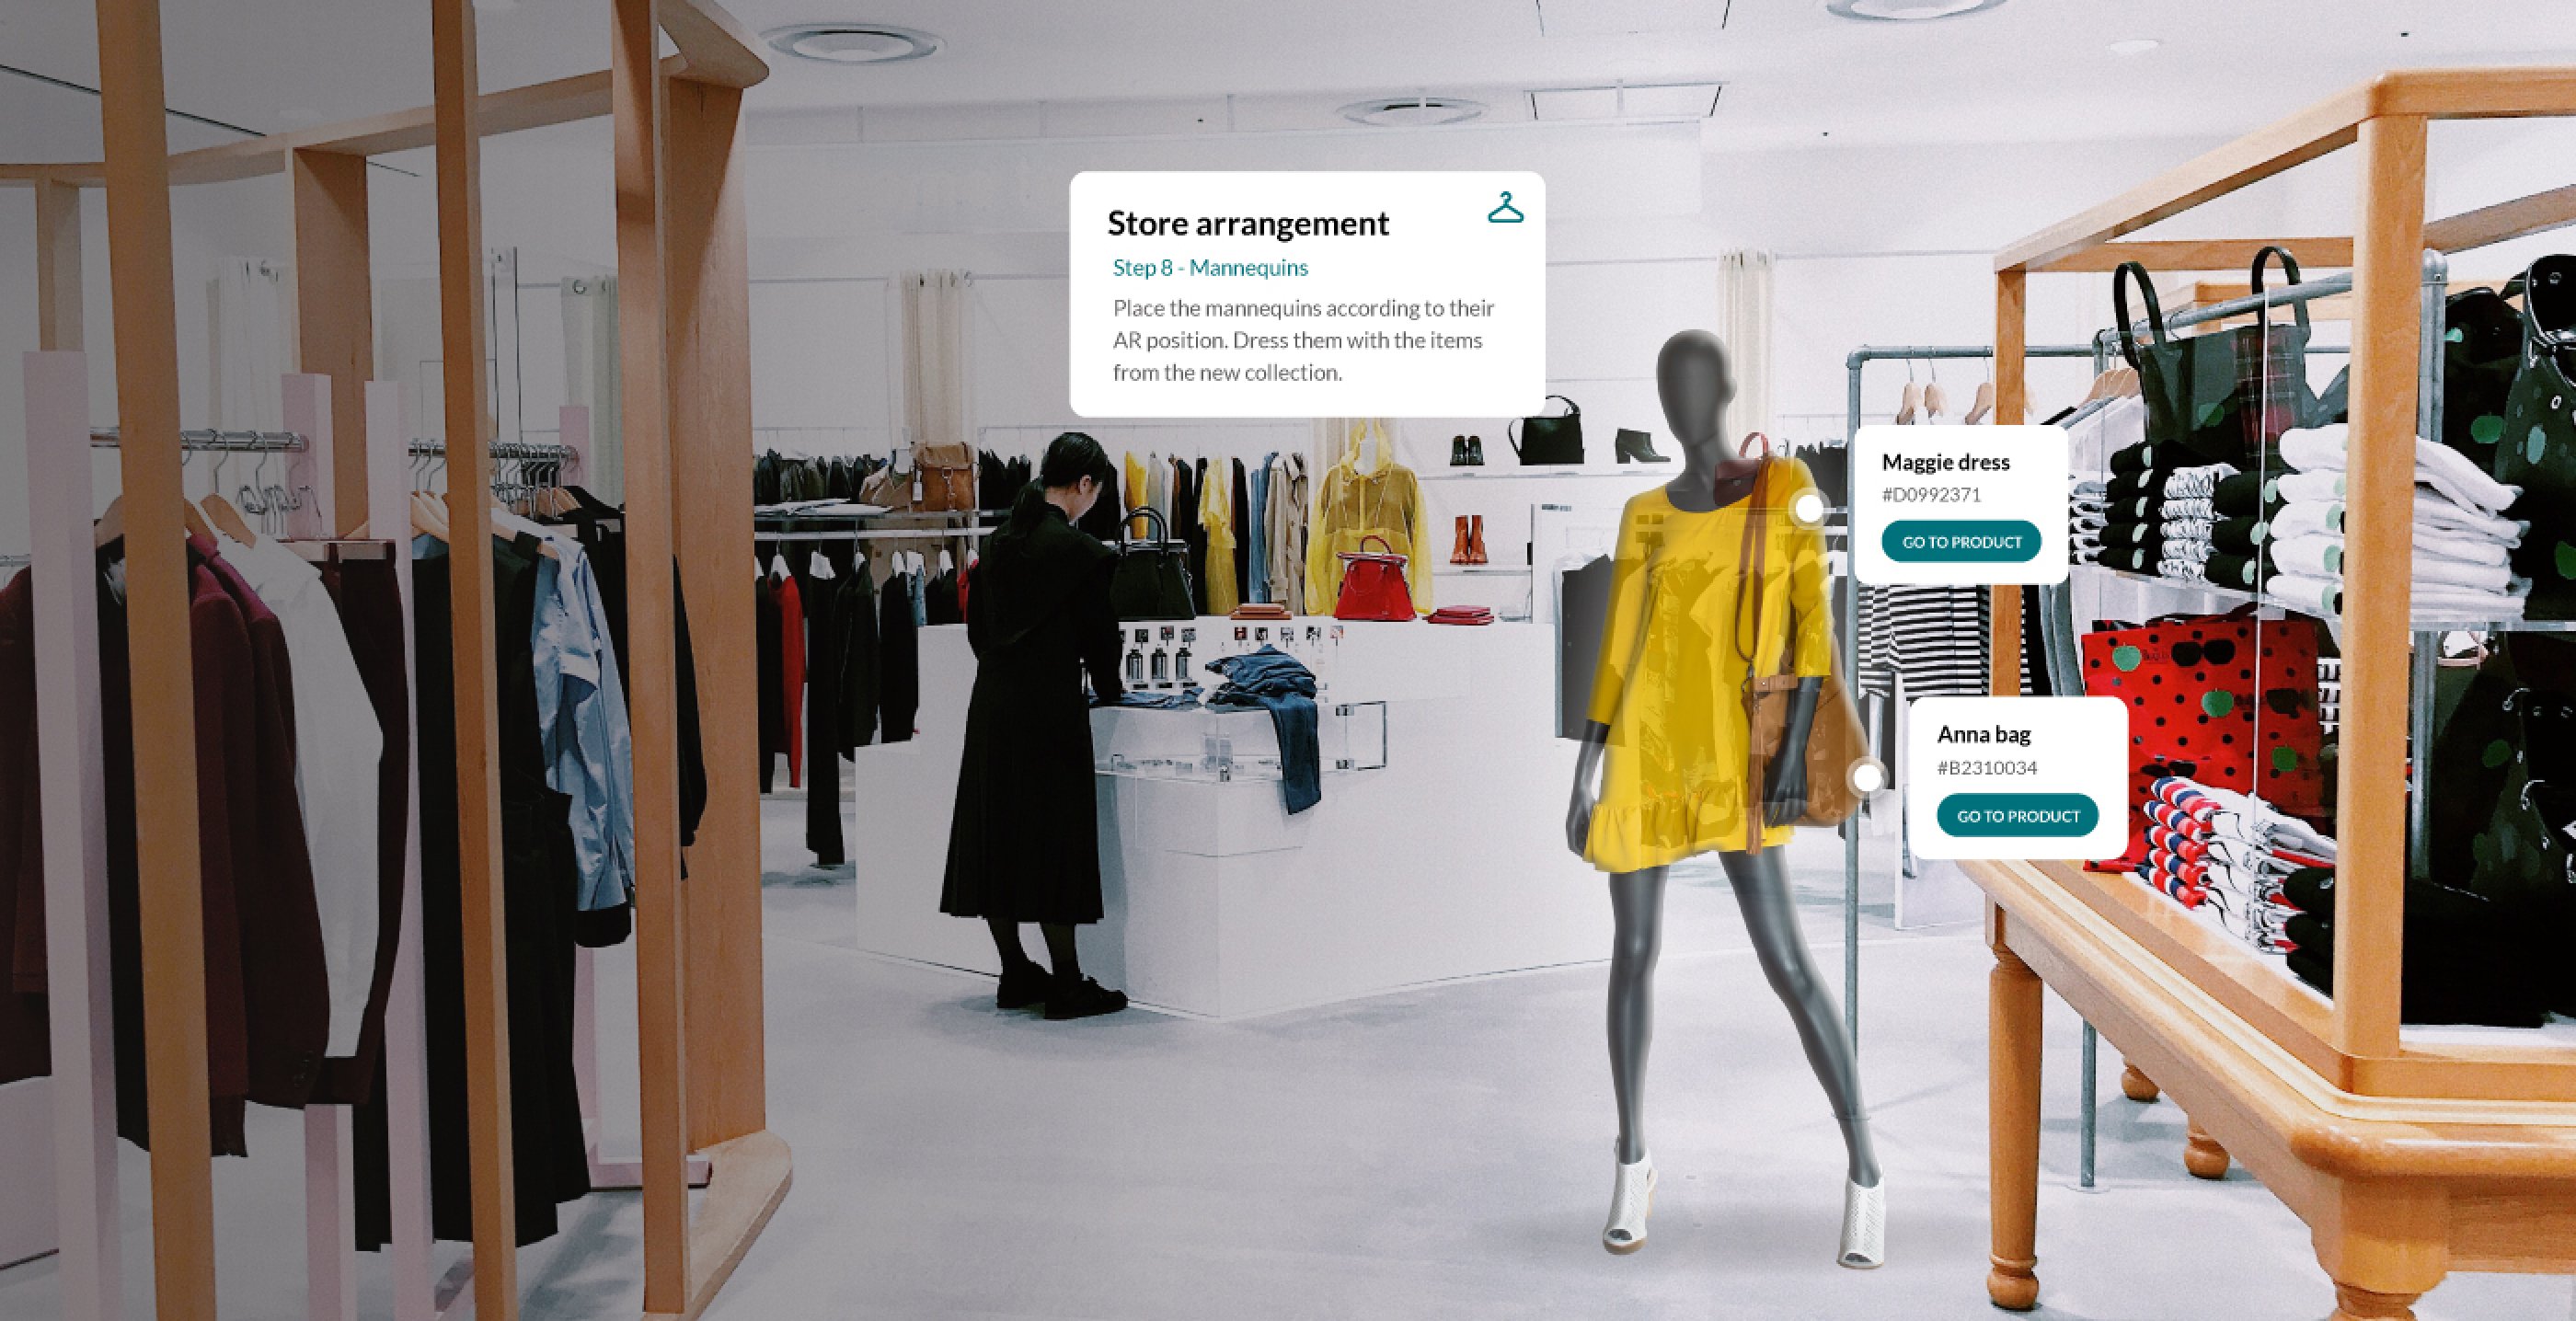 Augmented reality pop-ups indicating product numbers and mannequin dress-up in a retail store